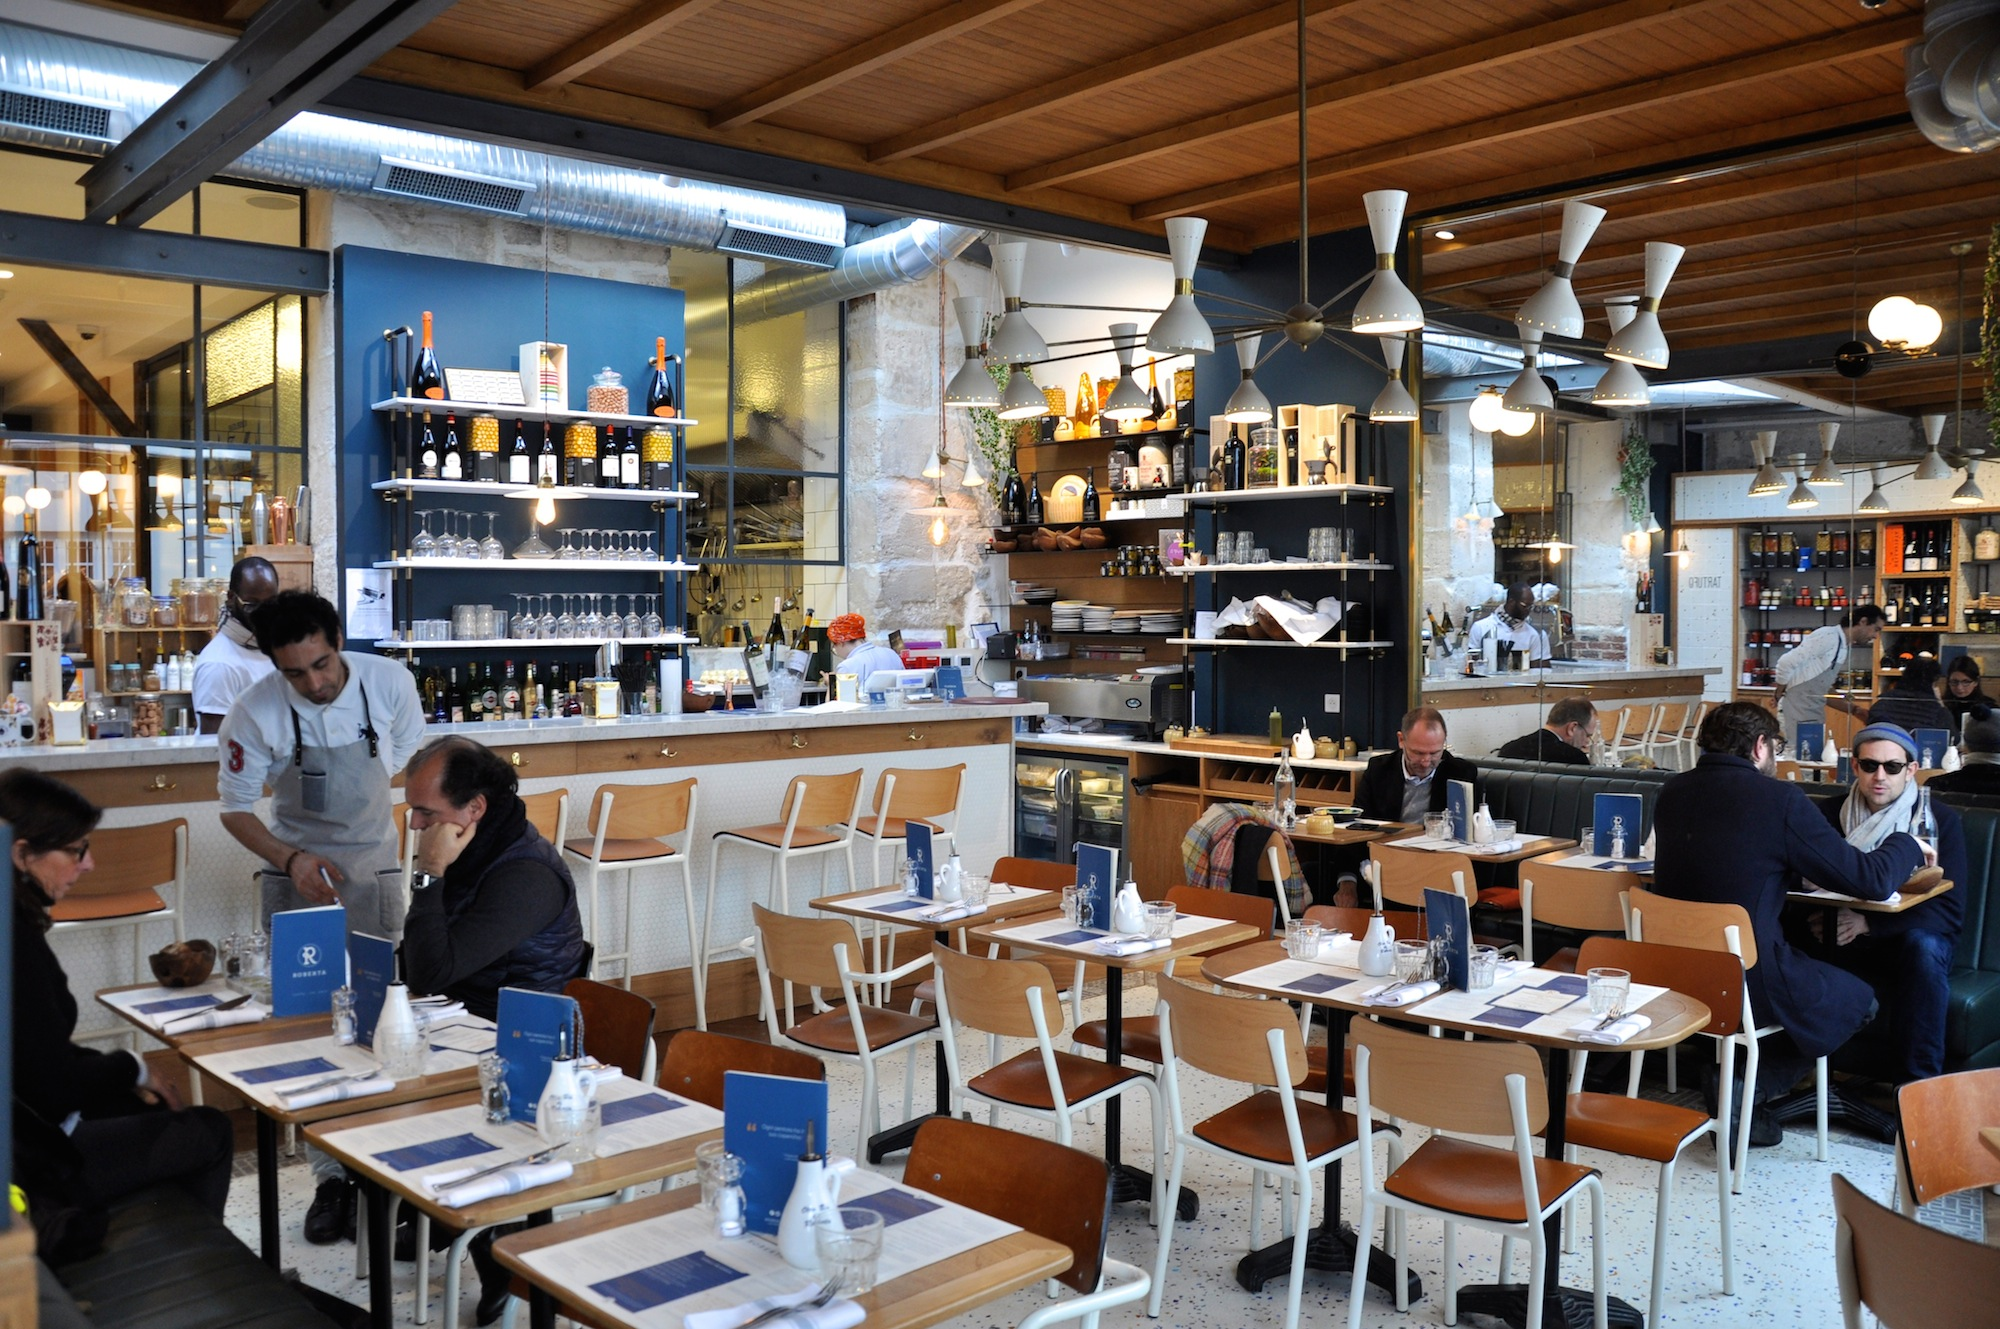 One of the best Italian restaurants in Paris' Montmartre, is Roberta, for its homemade pasta and pizza and canteen style interiors.